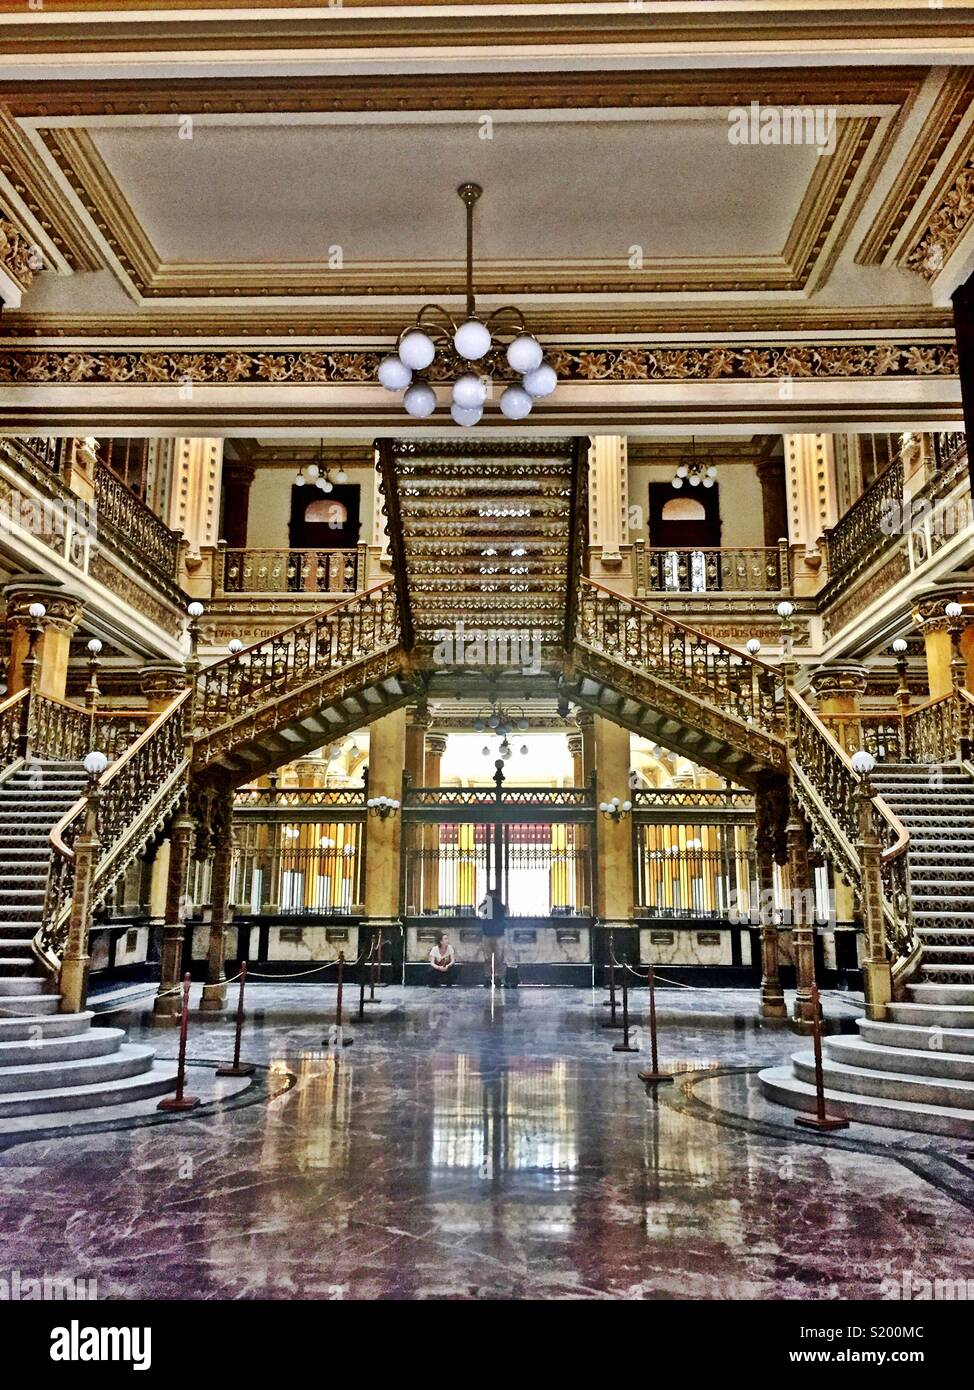 Main Post Office (Postal Palace) in Mexico City - Stock Image